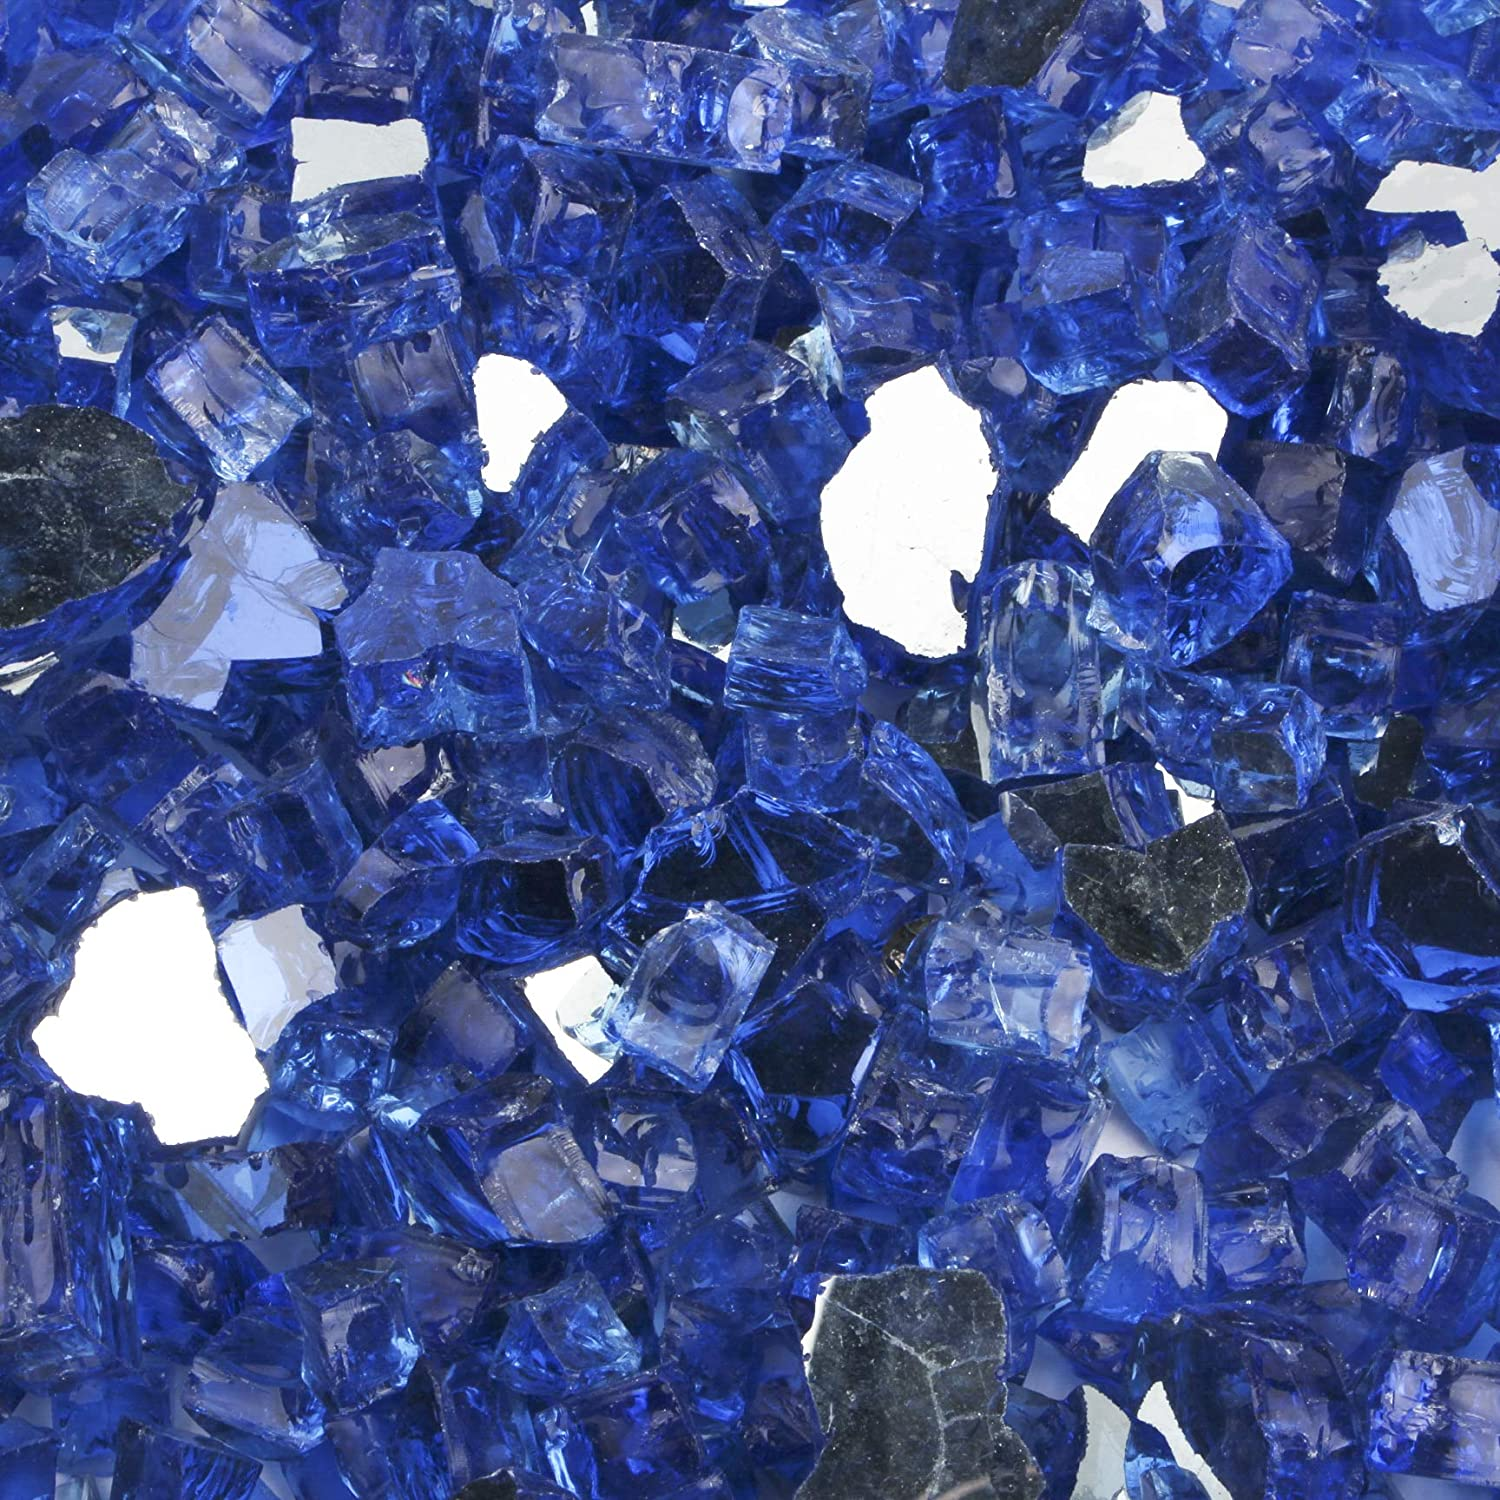 B07CTHZJGB Li Decor 10 Pound 1/2 Inch Fire Glass High Luster Tempered Fireglass Outdoor Cobalt Blue Reflective 81gfJmm-H0L